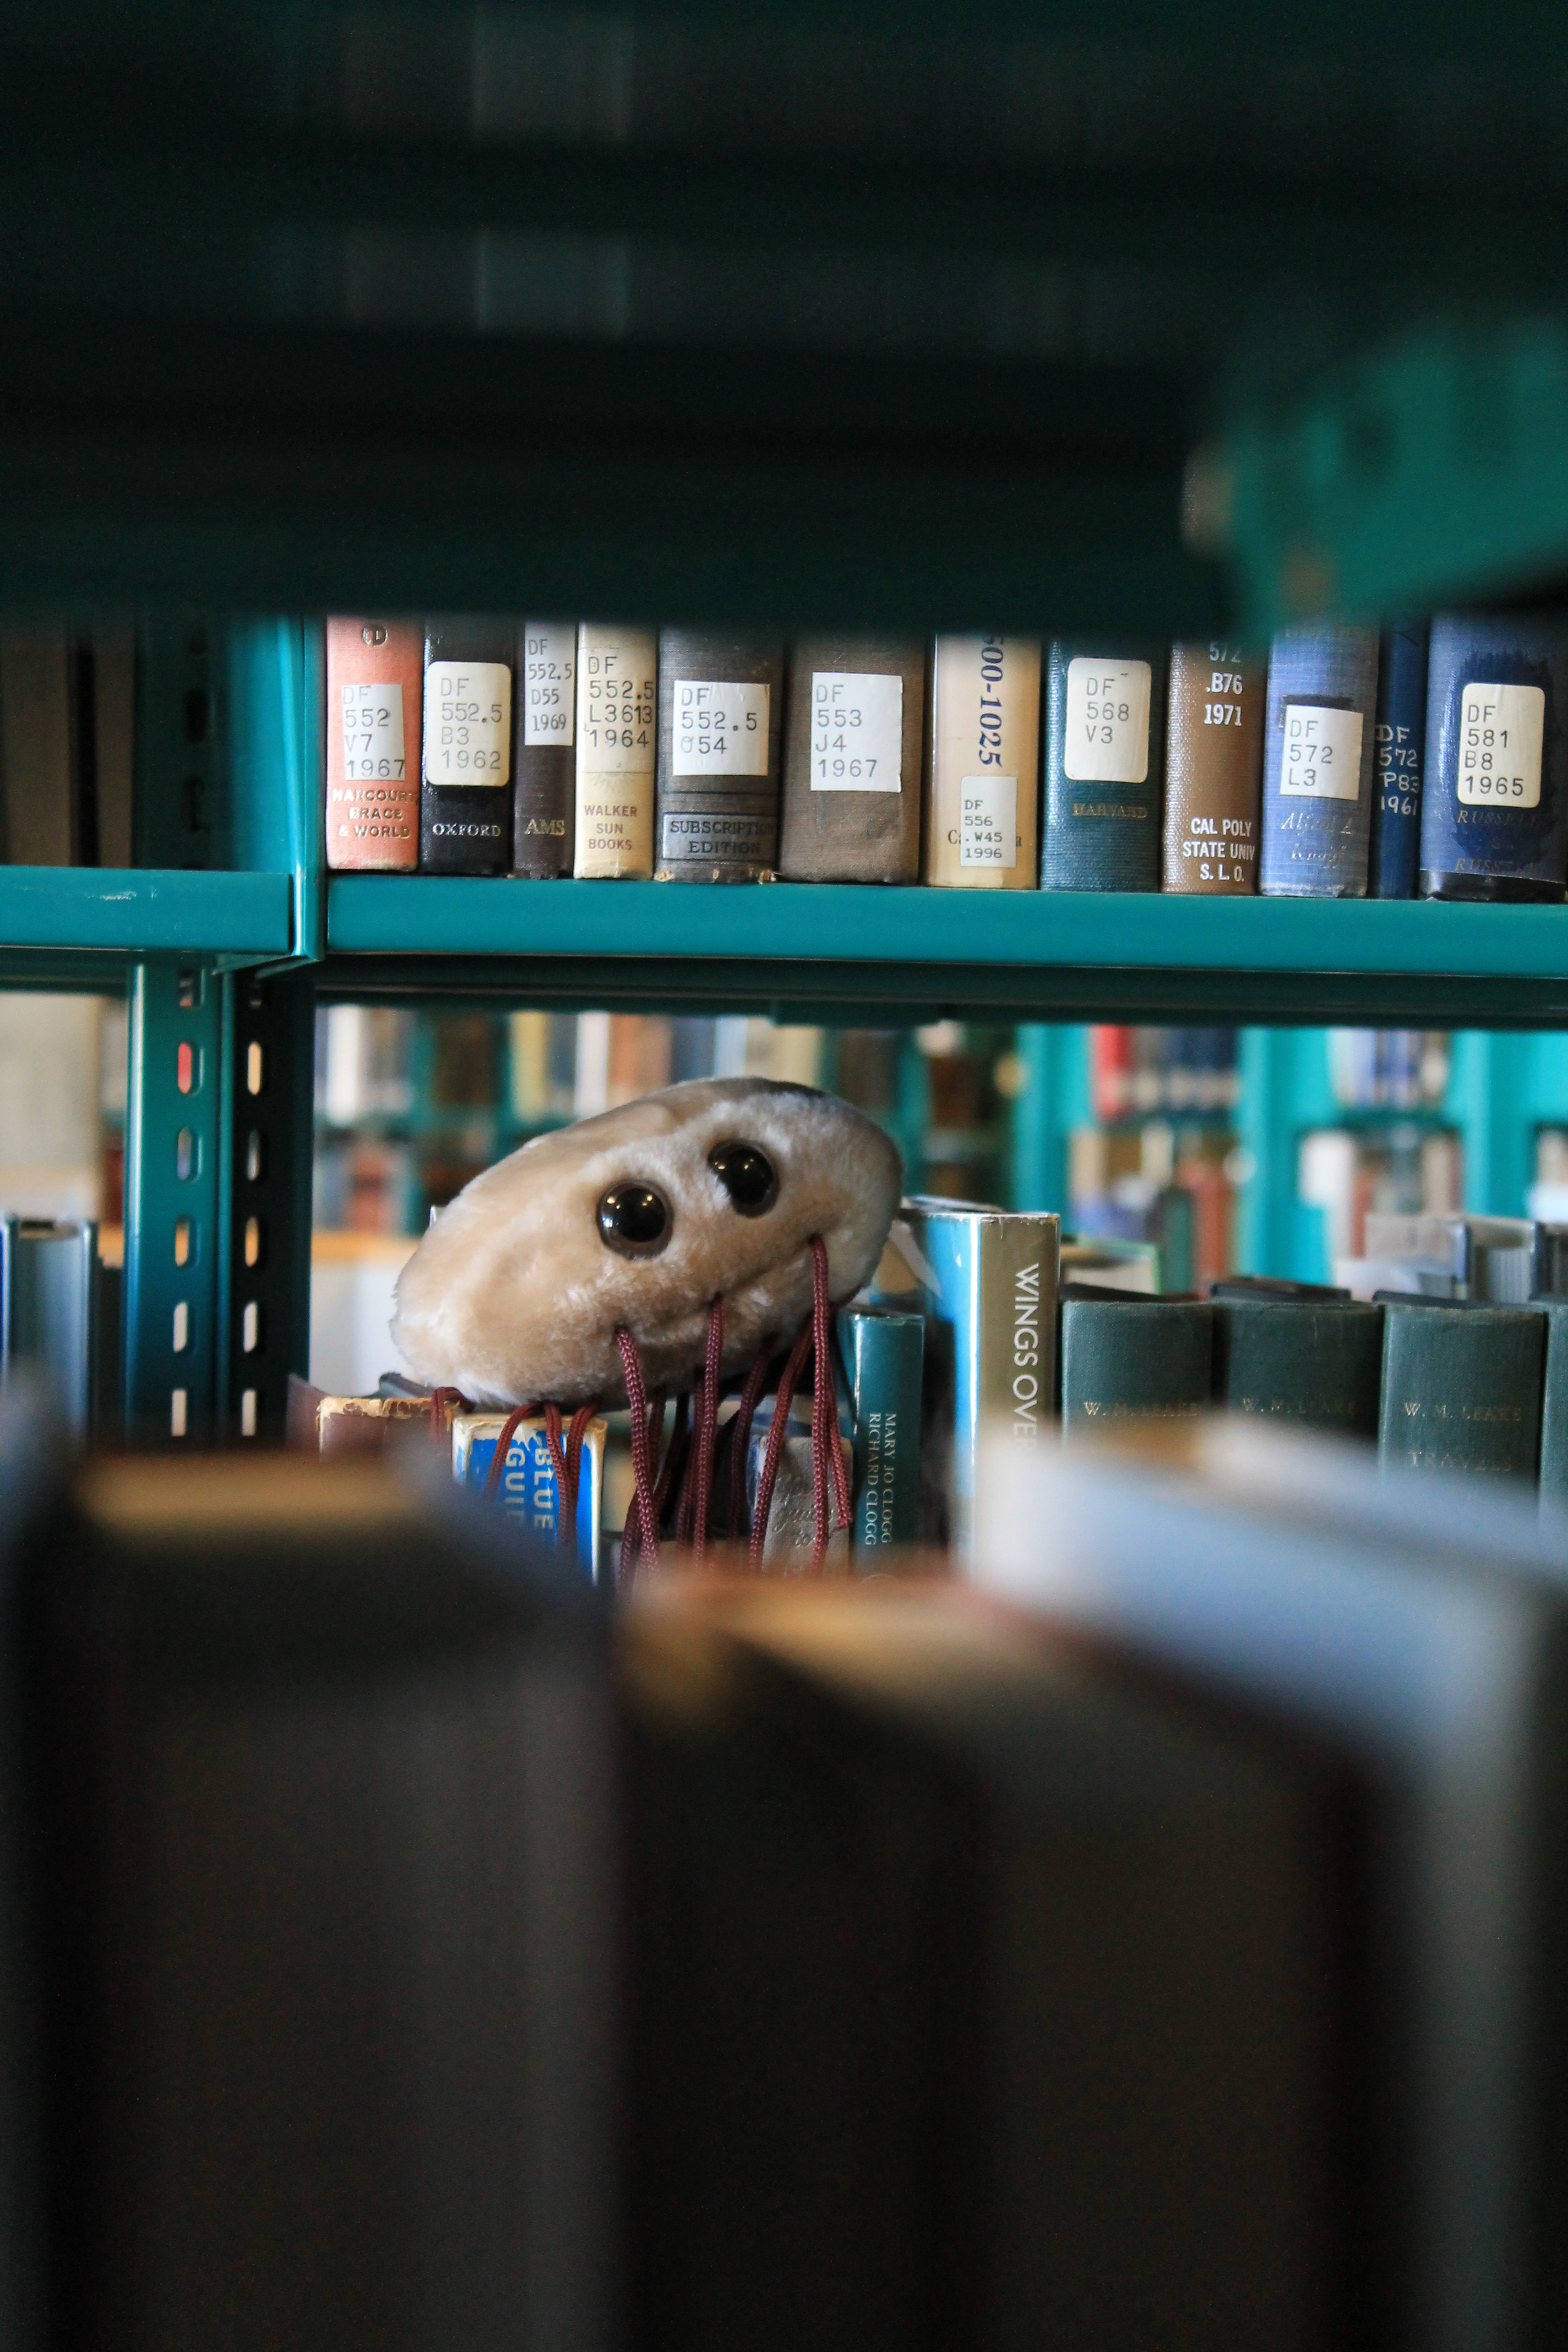 A photo of a giant microbe plush of an E. coli cell, sitting on top of a shelf of books.